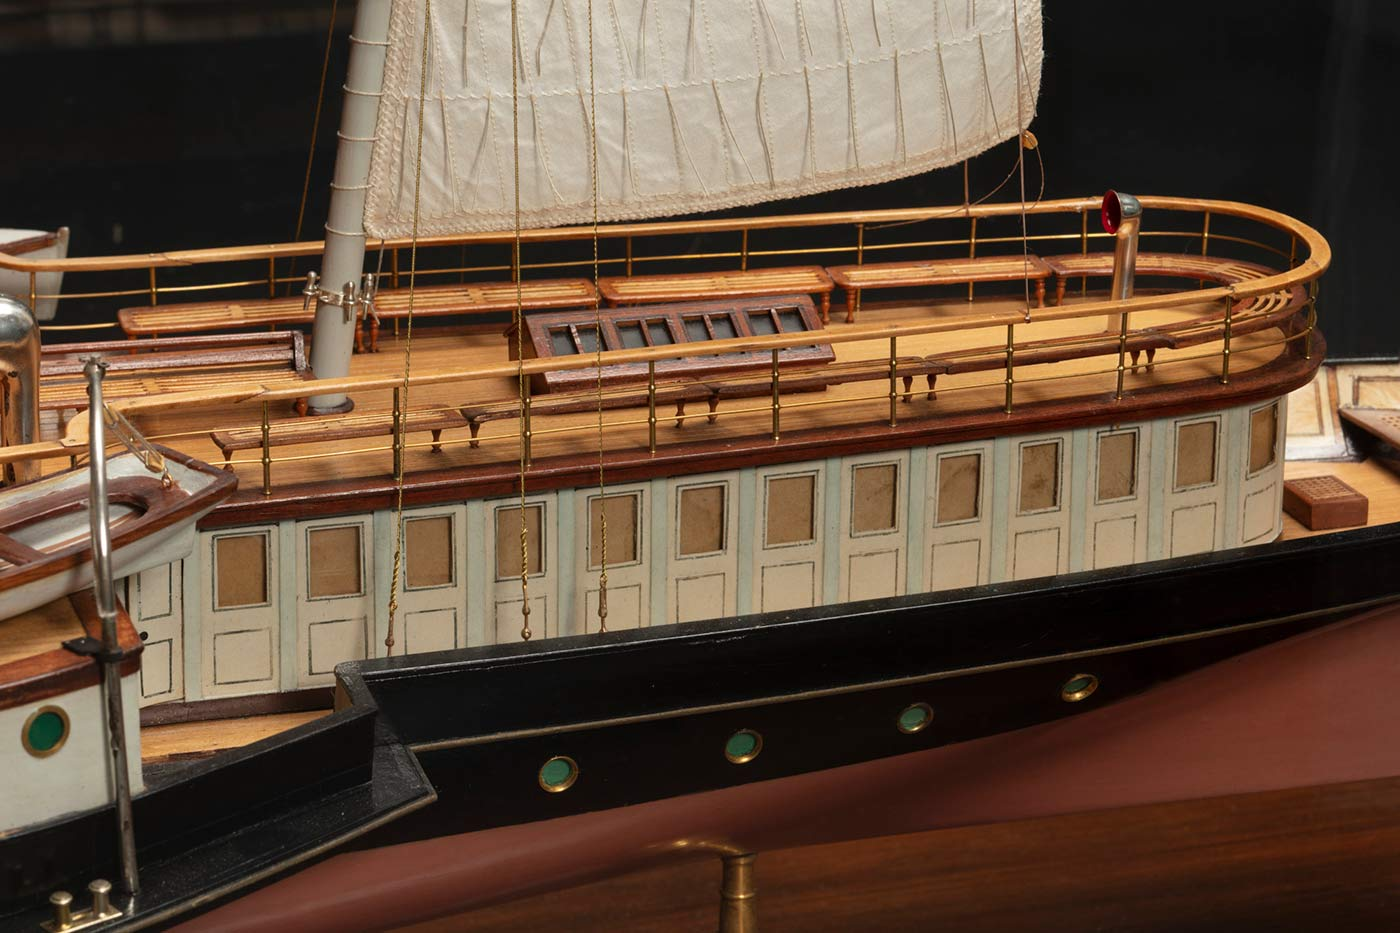 Detail of a model of a ship featuring the rear upper area of the deck. - click to view larger image